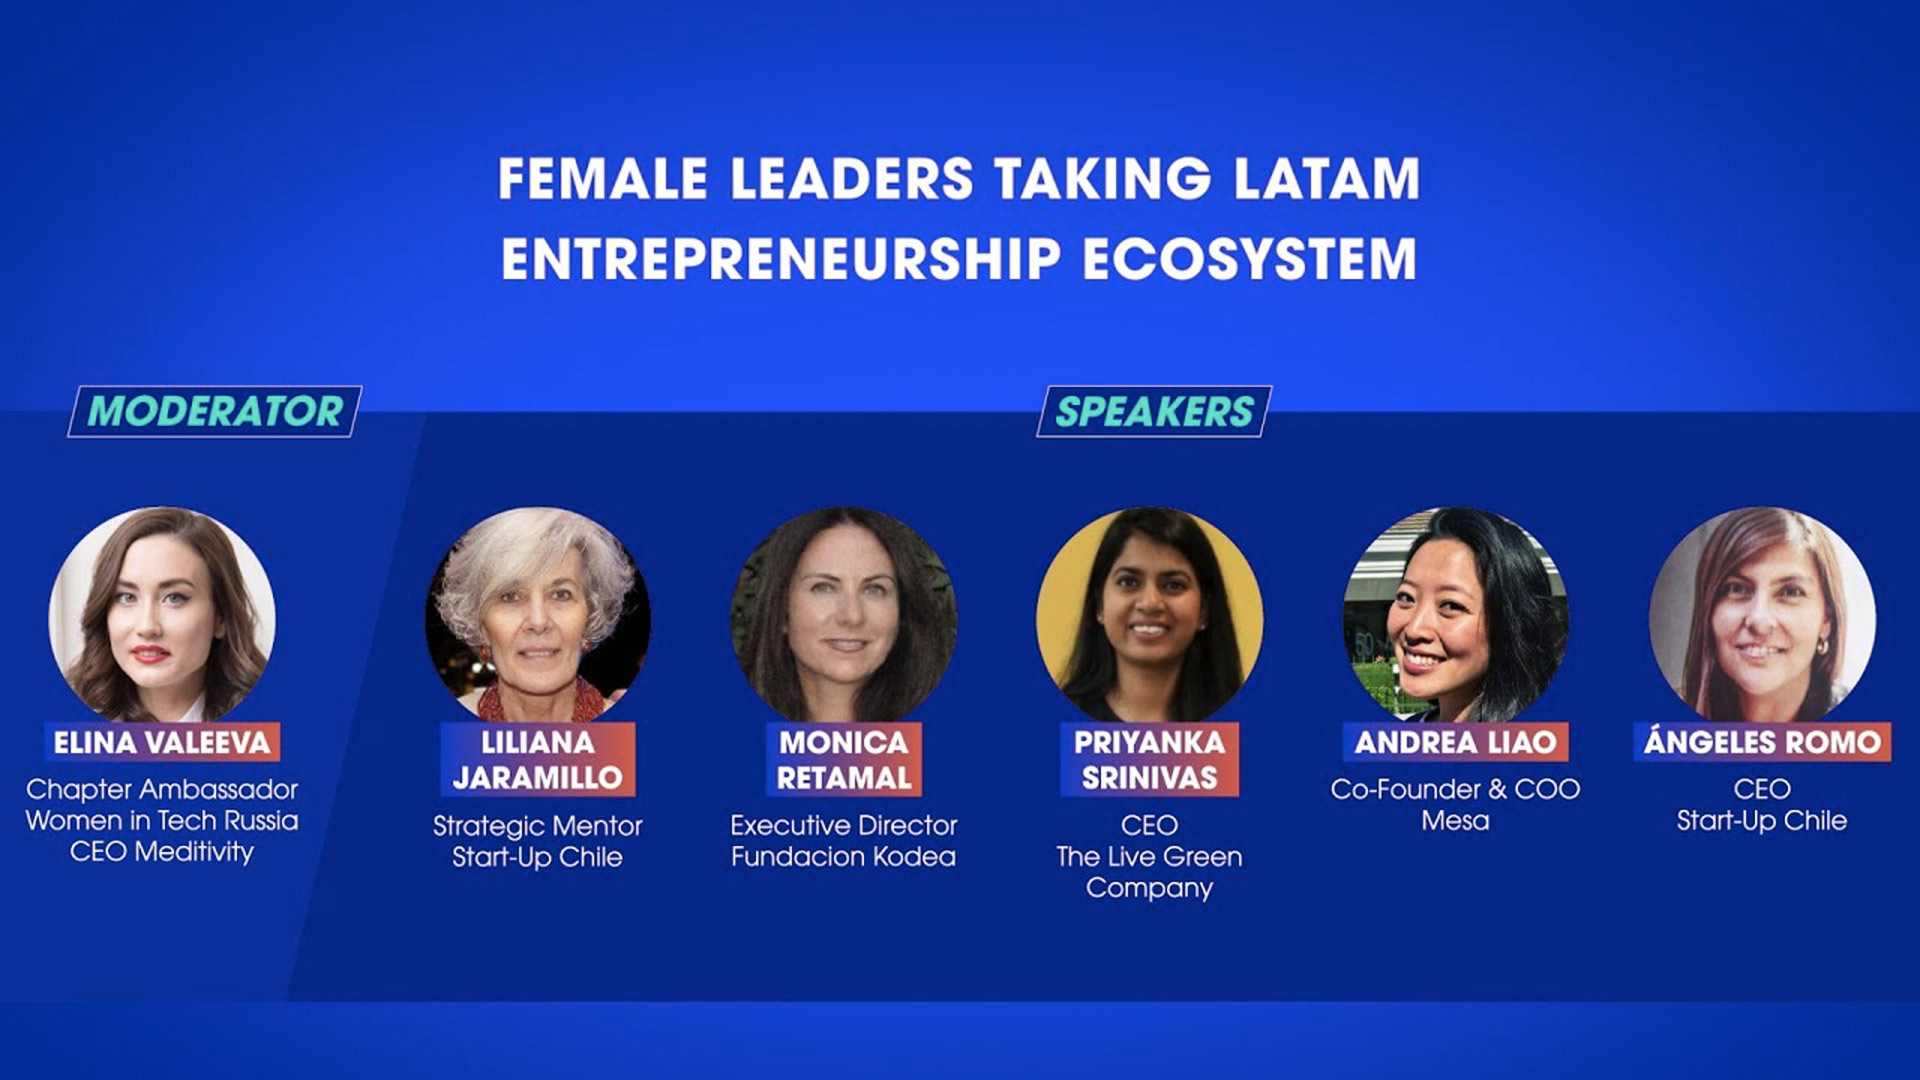 Female leaders taking LATAM entrepreneurship ecosystem